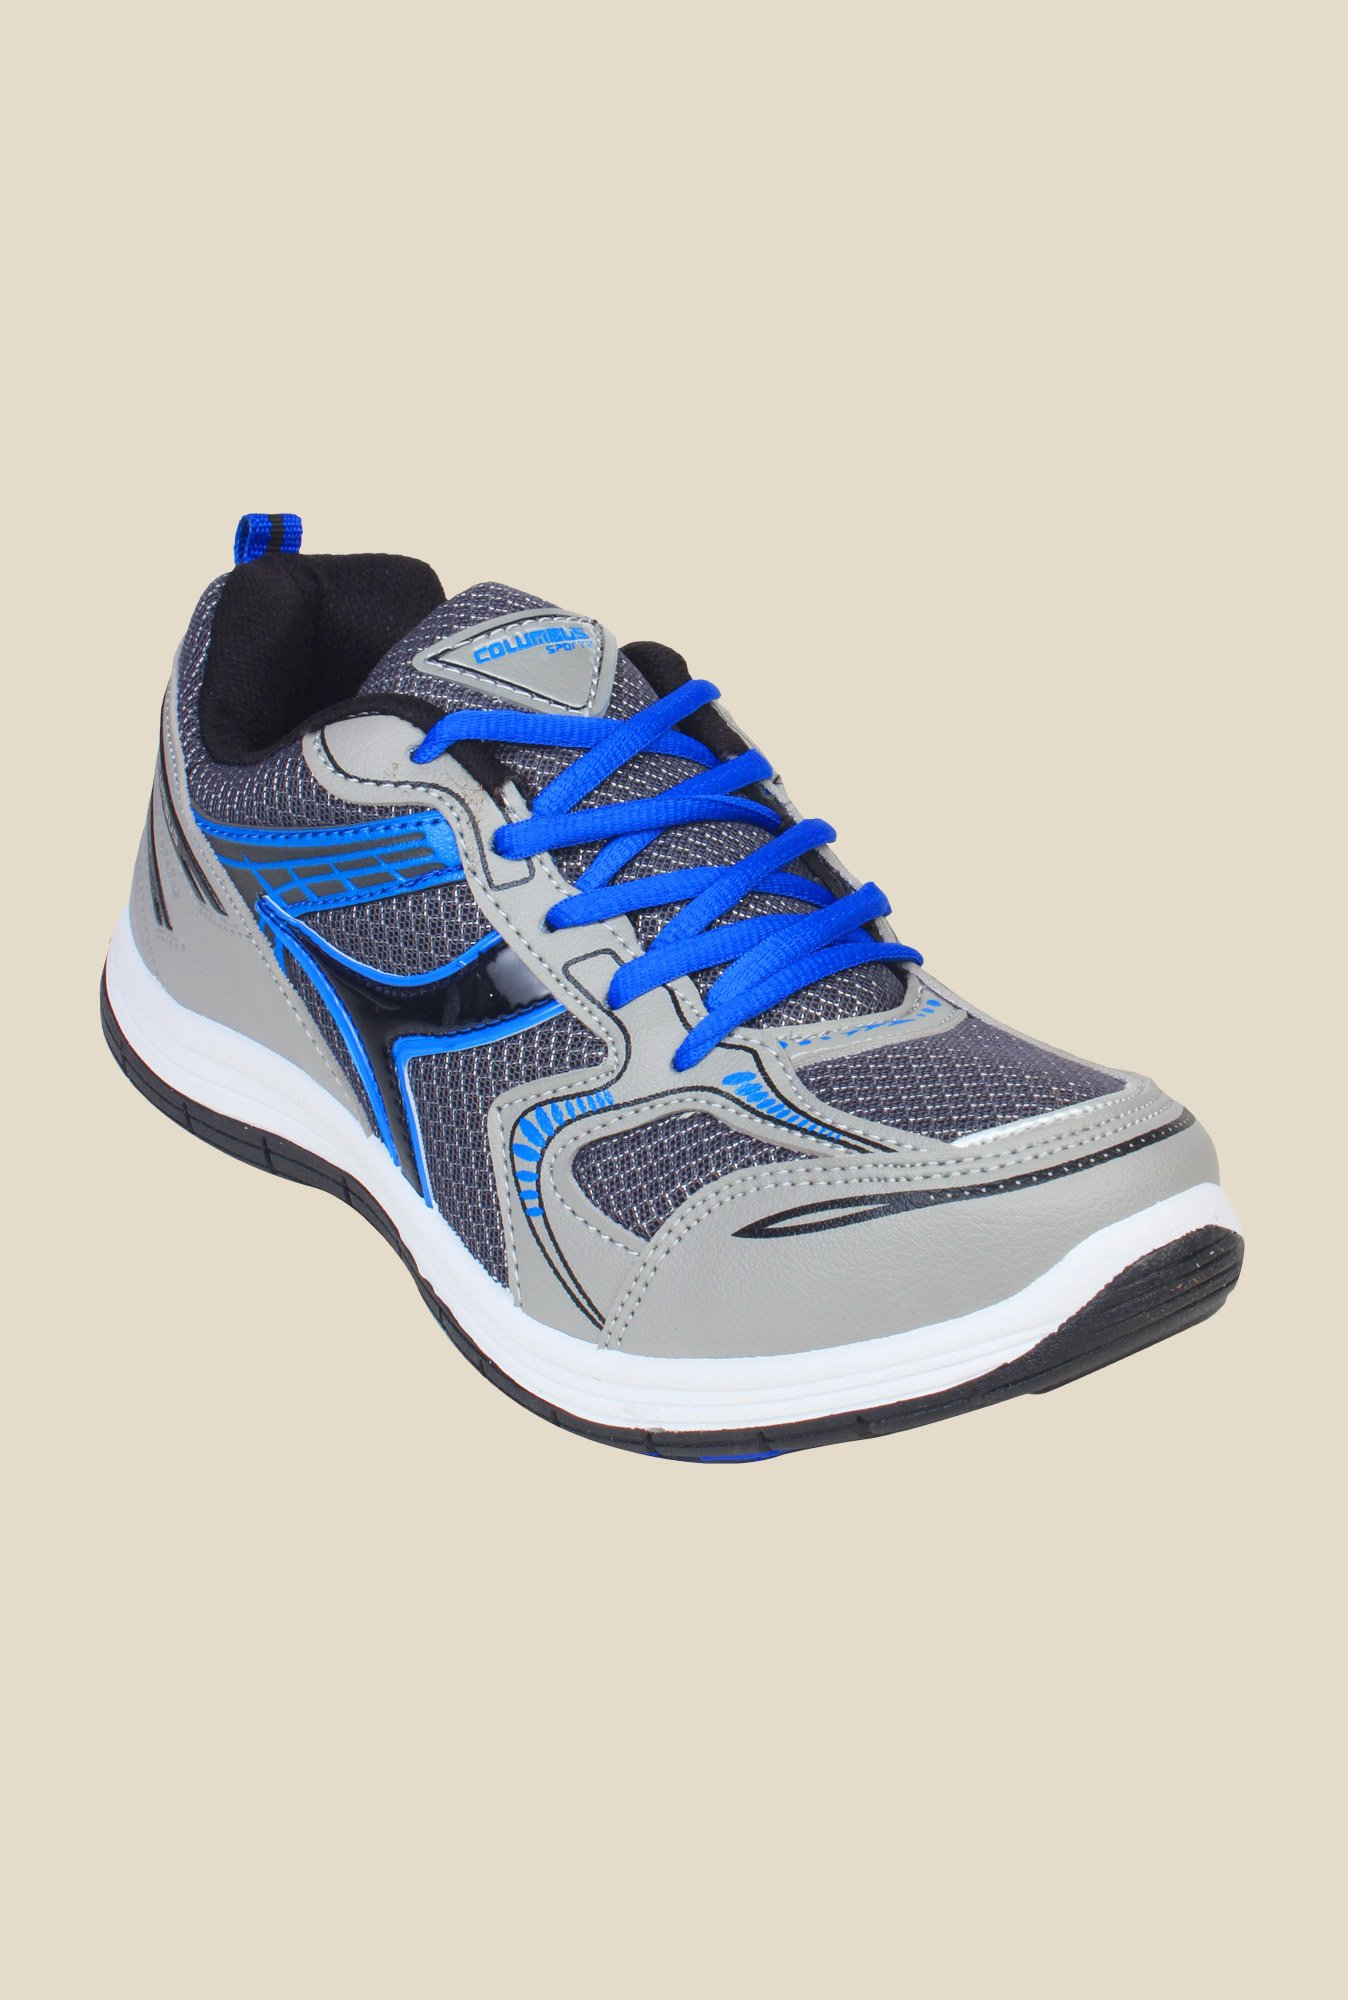 Columbus FM-1 Grey & Blue Running Shoes